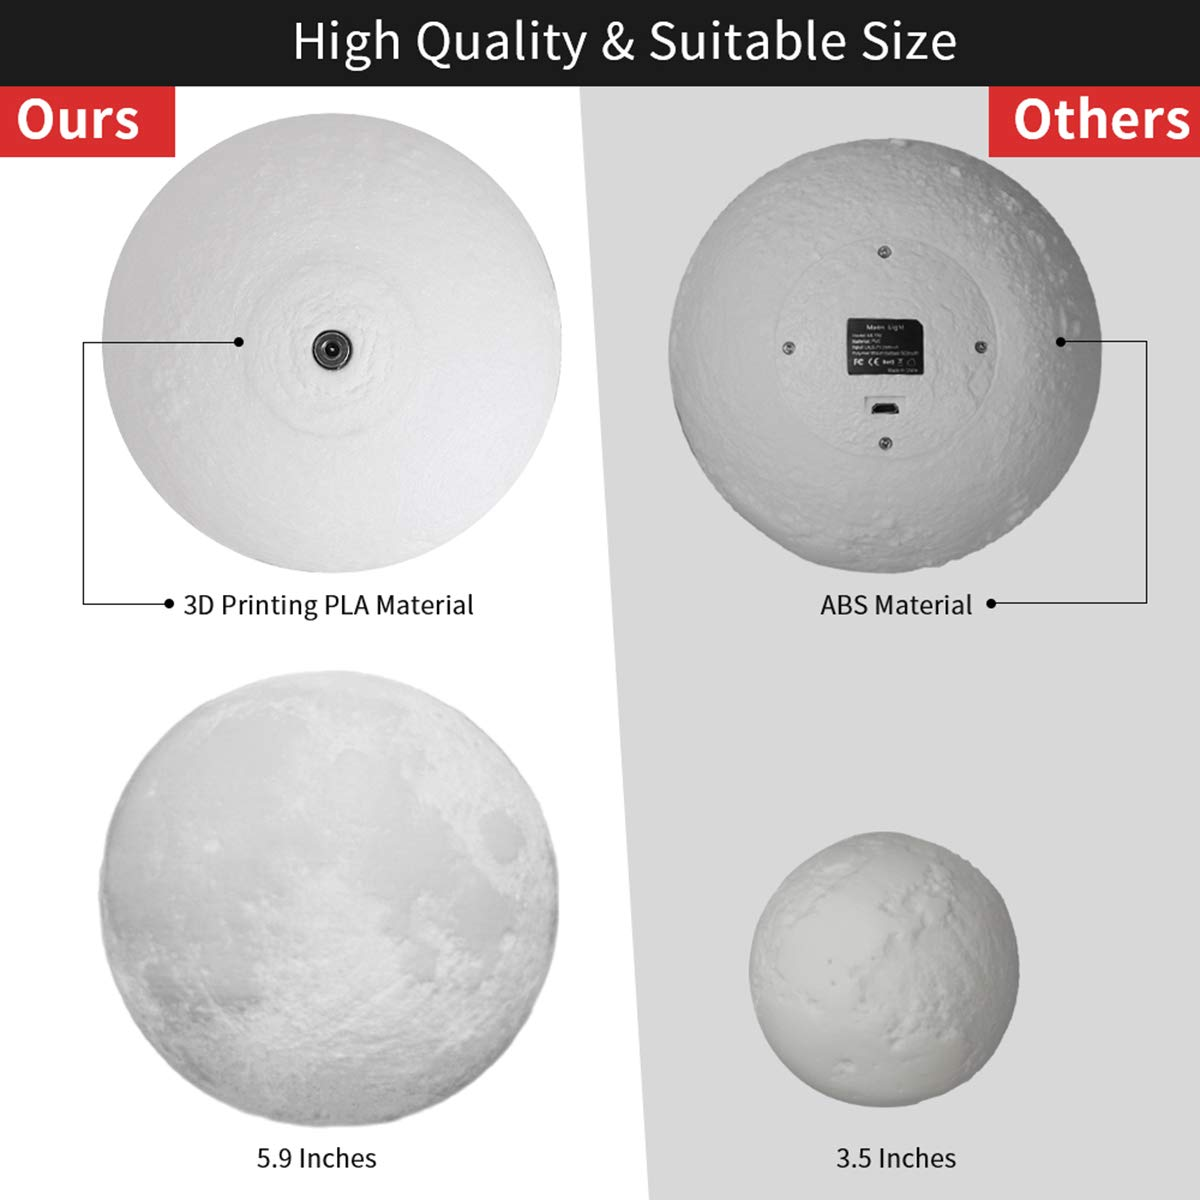 Sunba Youth Moon Night-1 3D Lunar Lamp with Stand, 5.9 Inches Mystical Rechargeable Dimmable Touch Control Lighting Color for Home Decor, 6.96.96.5, Warm Color by Sunba Youth (Image #6)